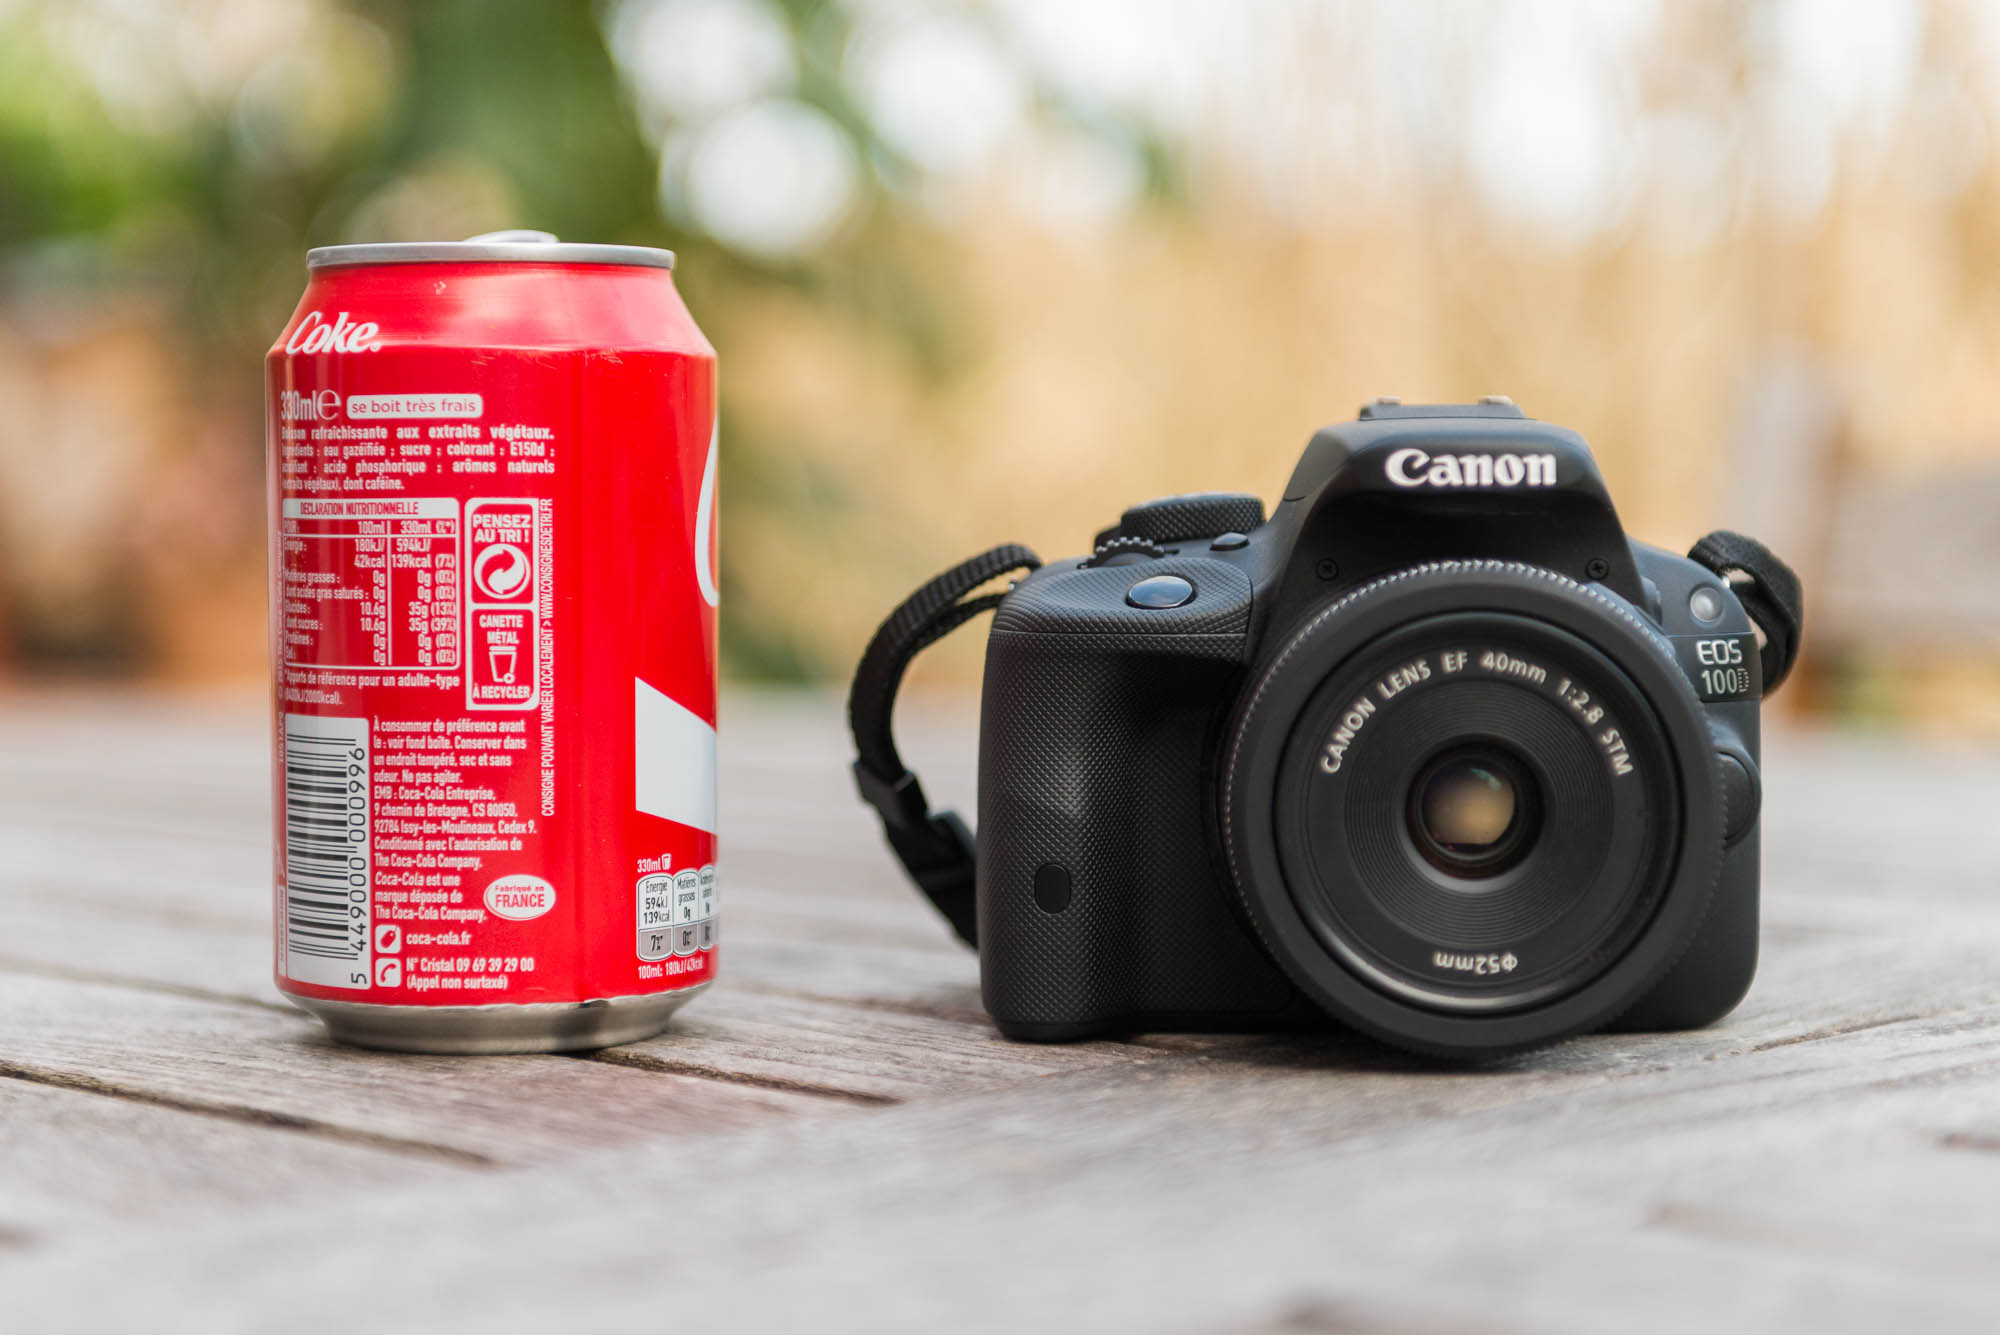 Canon-EOS-100D-test-phototrend_5